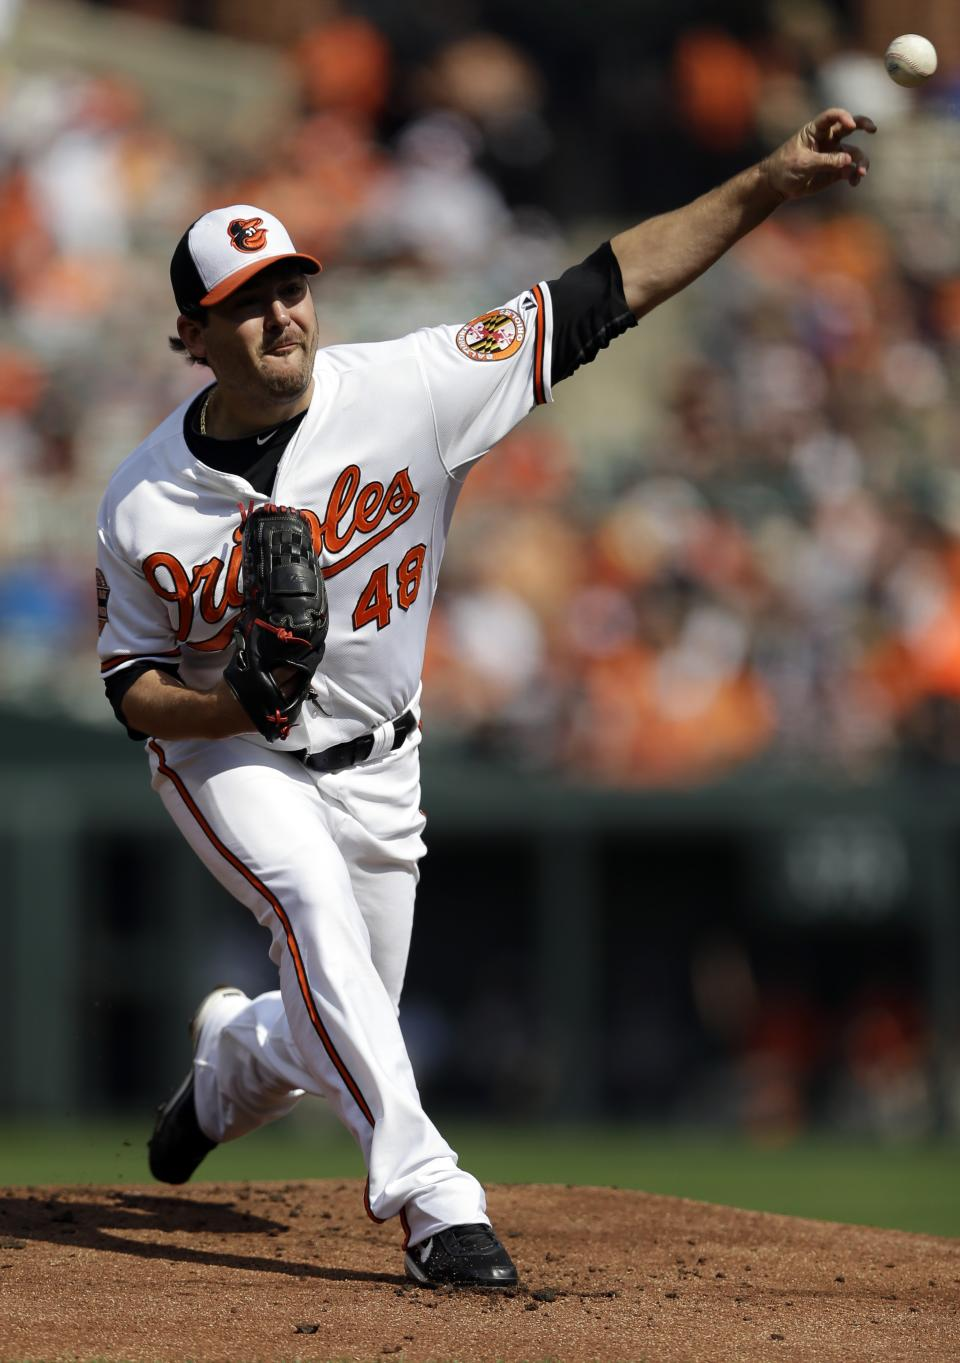 Baltimore Orioles starting pitcher Joe Saunders throws to the Boston Red Sox in the first inning of a baseball game in Baltimore, Sunday, Sept. 30, 2012. (AP Photo/Patrick Semansky)